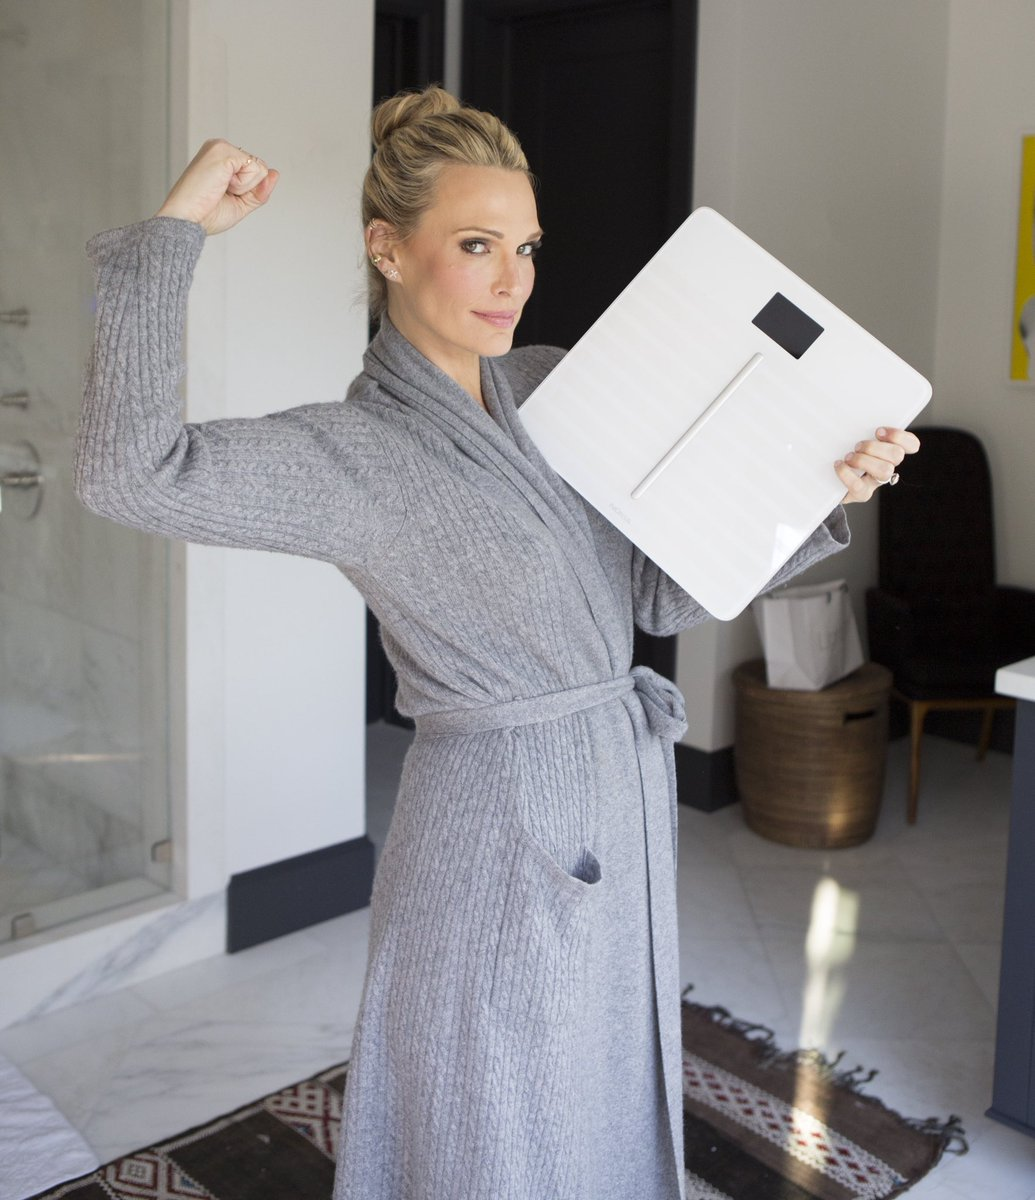 ".@NokiaHealth's Body Cardio Scale is helping me stay on track this holiday season to make sure I'm maintaining my weight and health! 💪🏼 Give the #GiftOfHealth this year by using ""MollySims20"" to receive 20% off the Body Cardio & Plus scales #ad Shop: https://t.co/kg6tf6n9Wi https://t.co/yWMUSb5TK1"